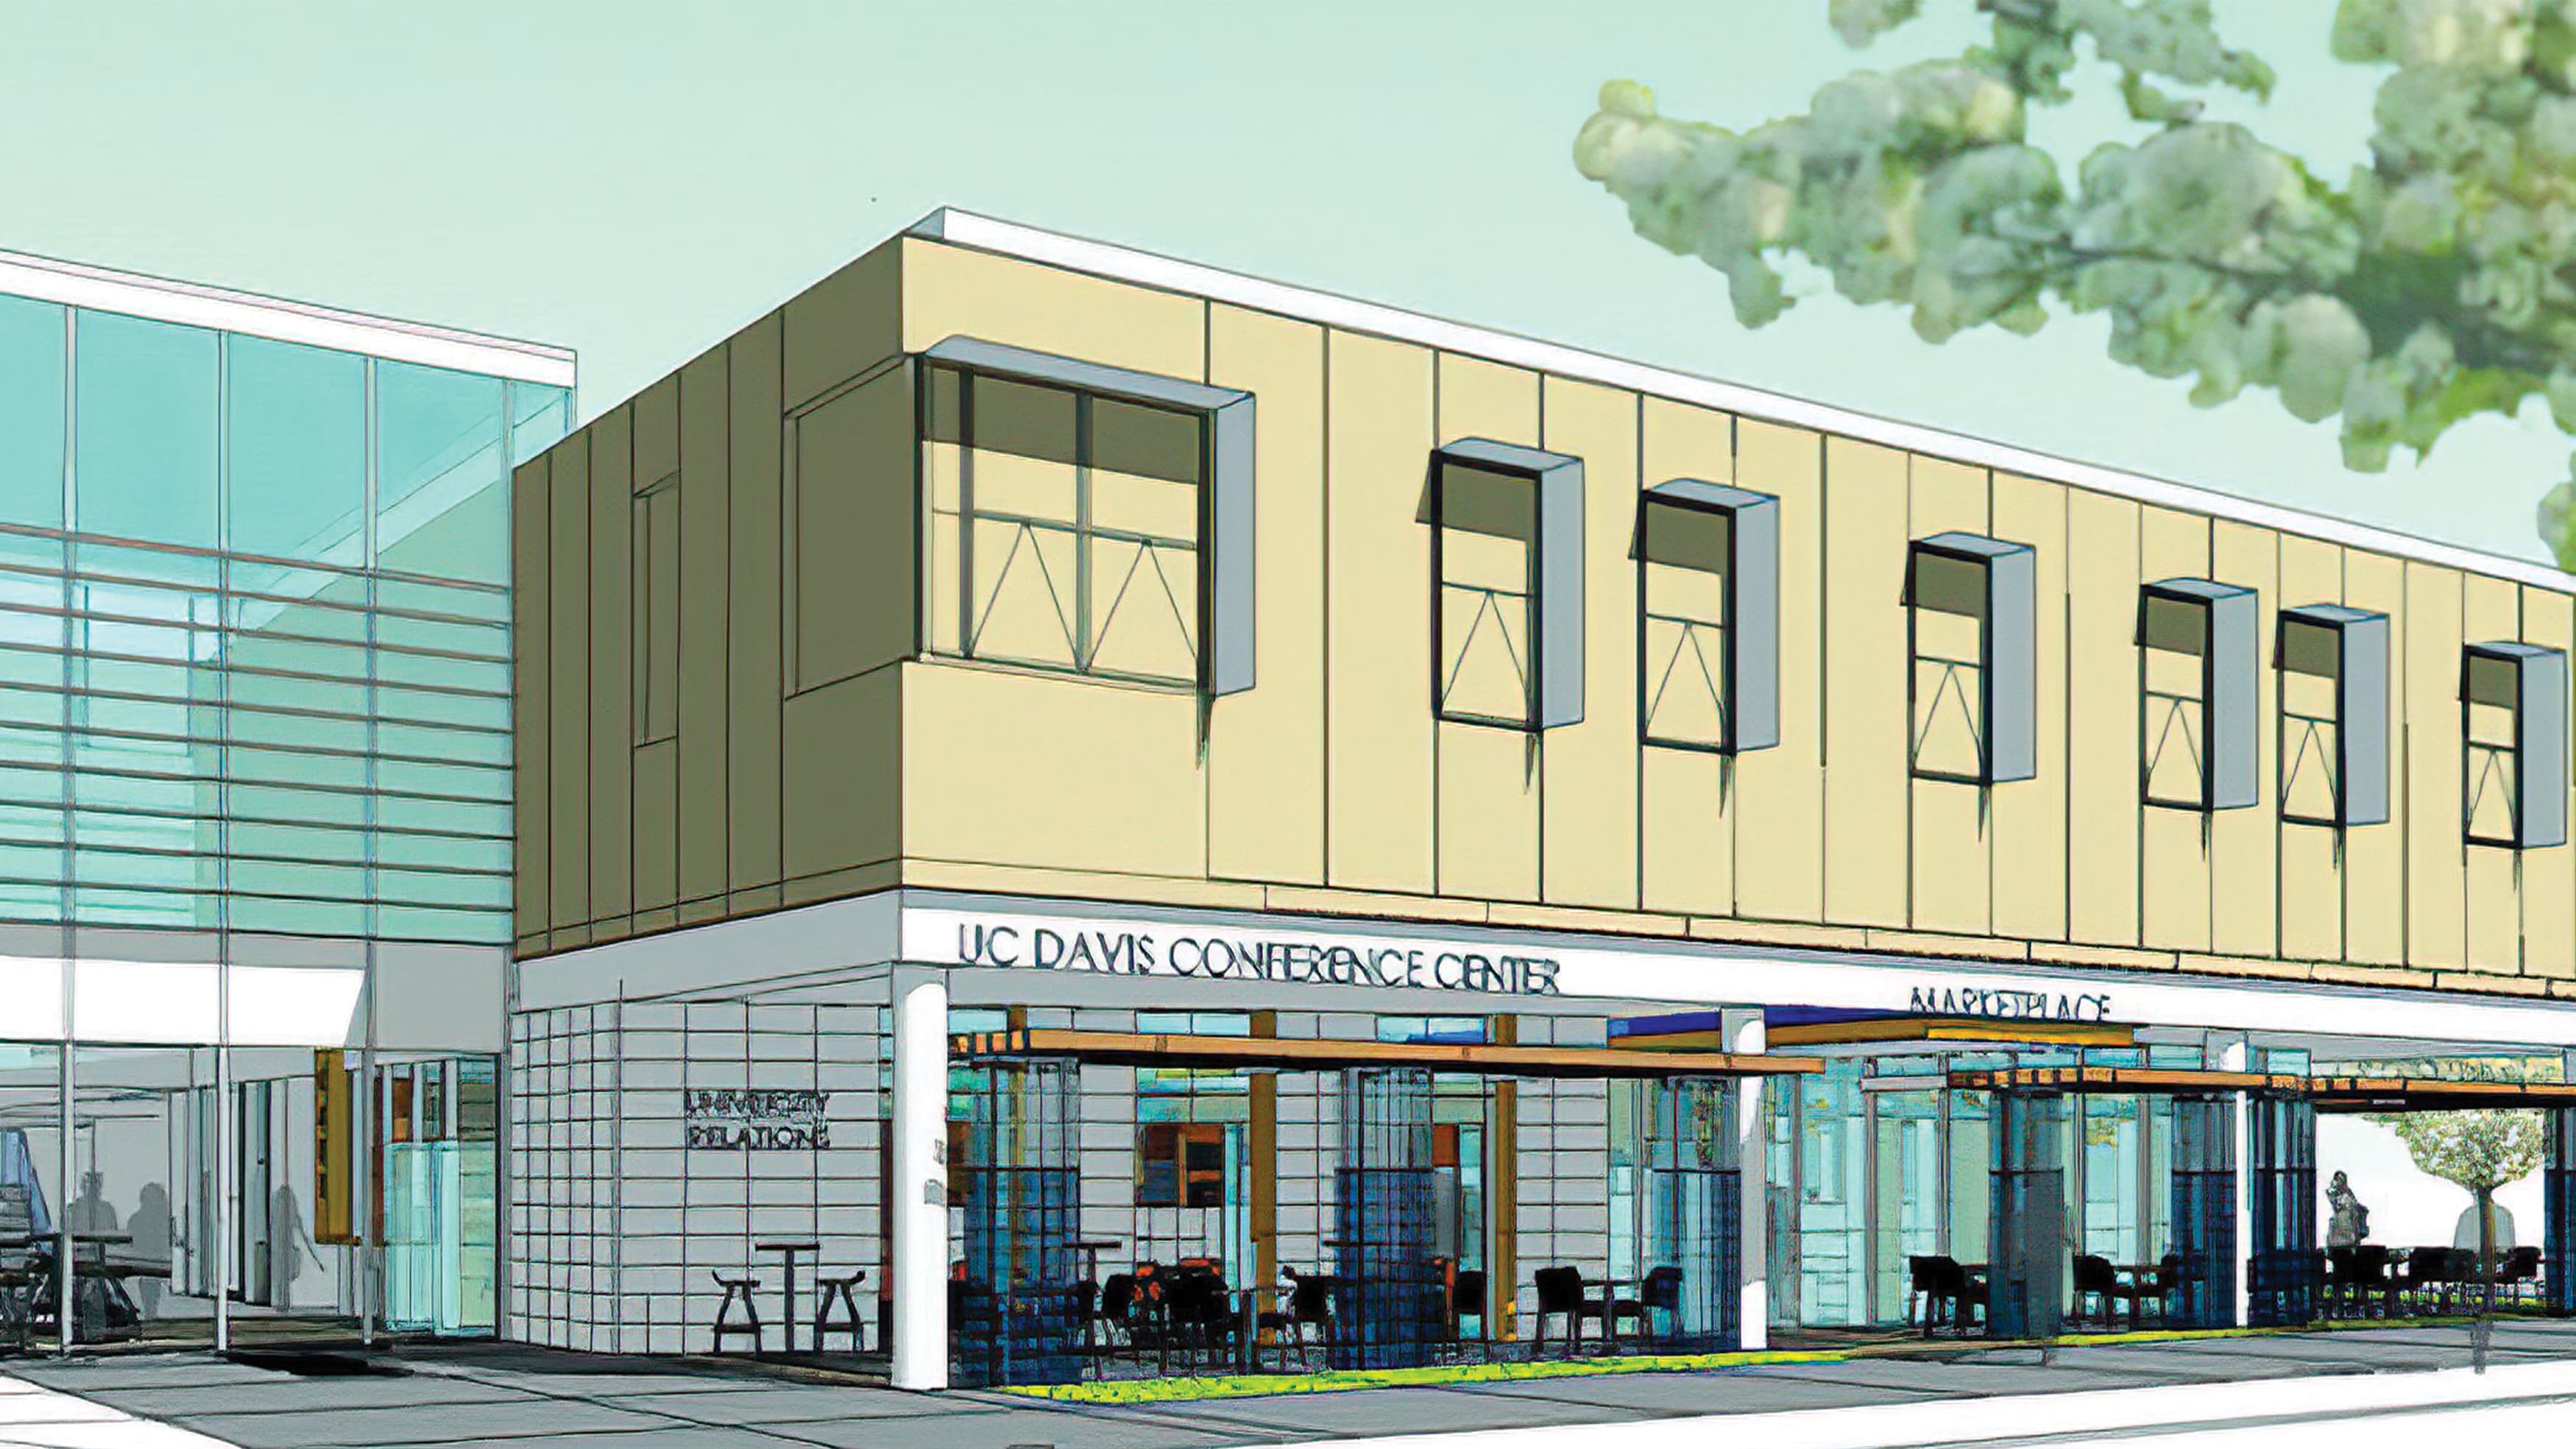 Architectural rendering of of UC Davis Conference Center